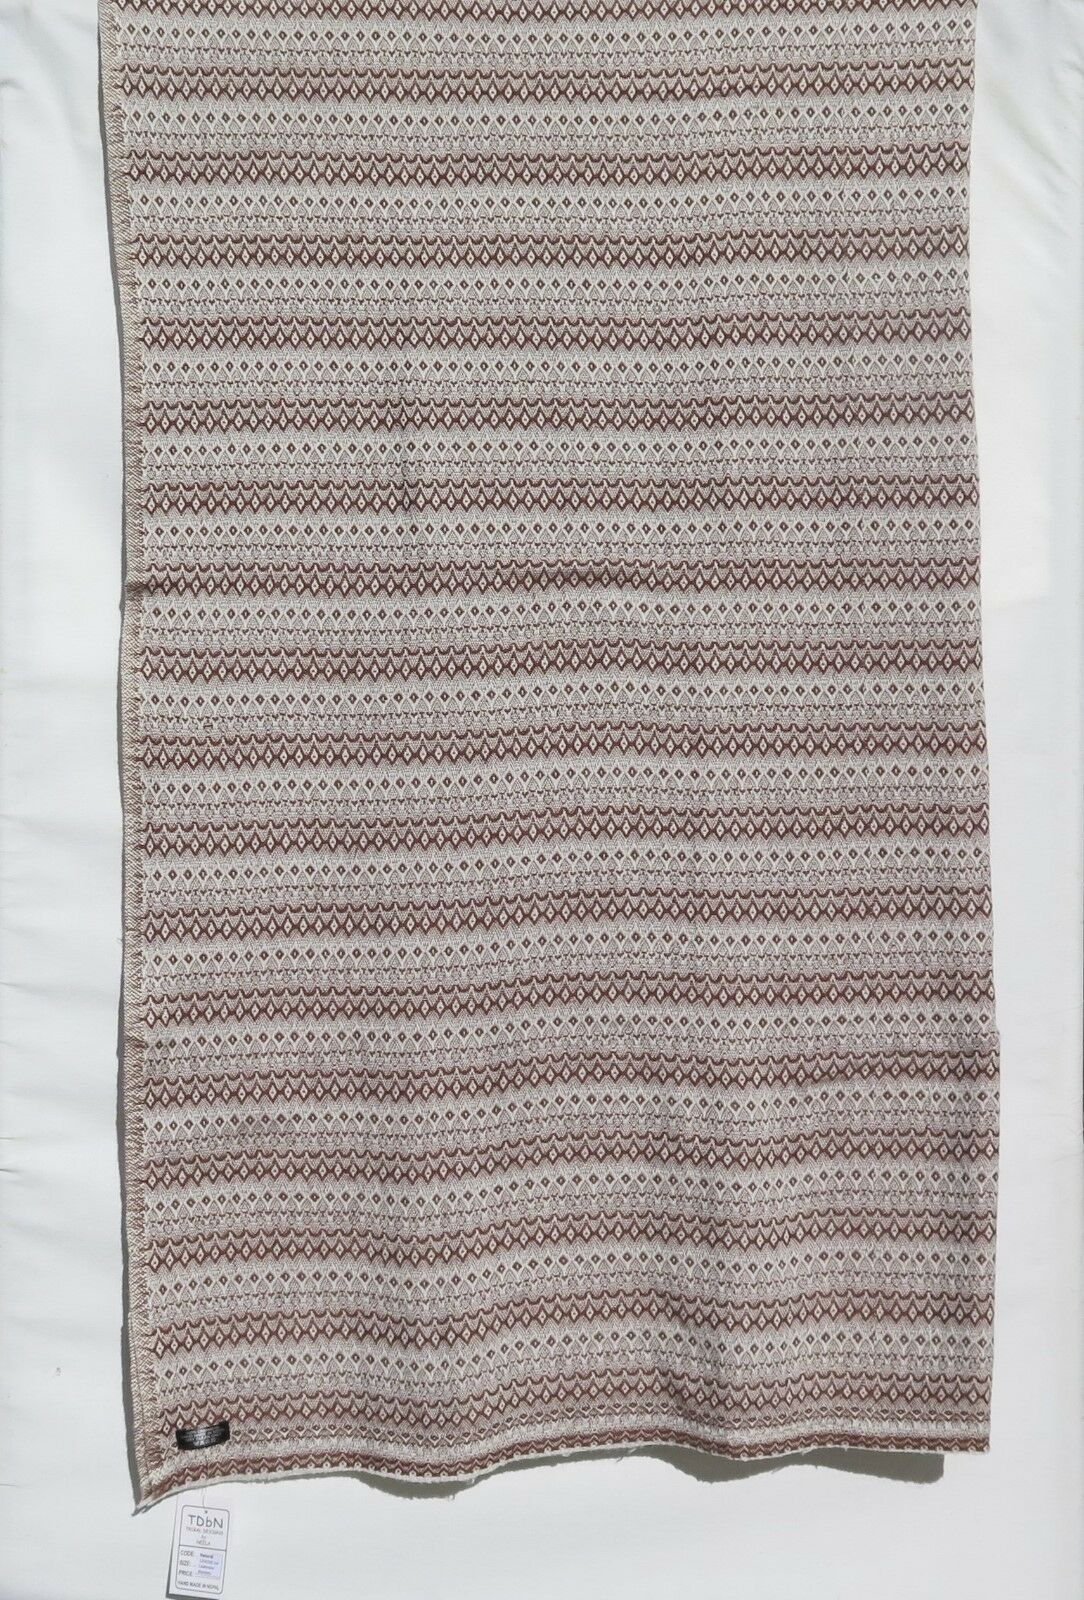 100% Cashmere 4 Ply Natural Throw Shawl Hand Loomed Nepal 2 color Brown Pearl